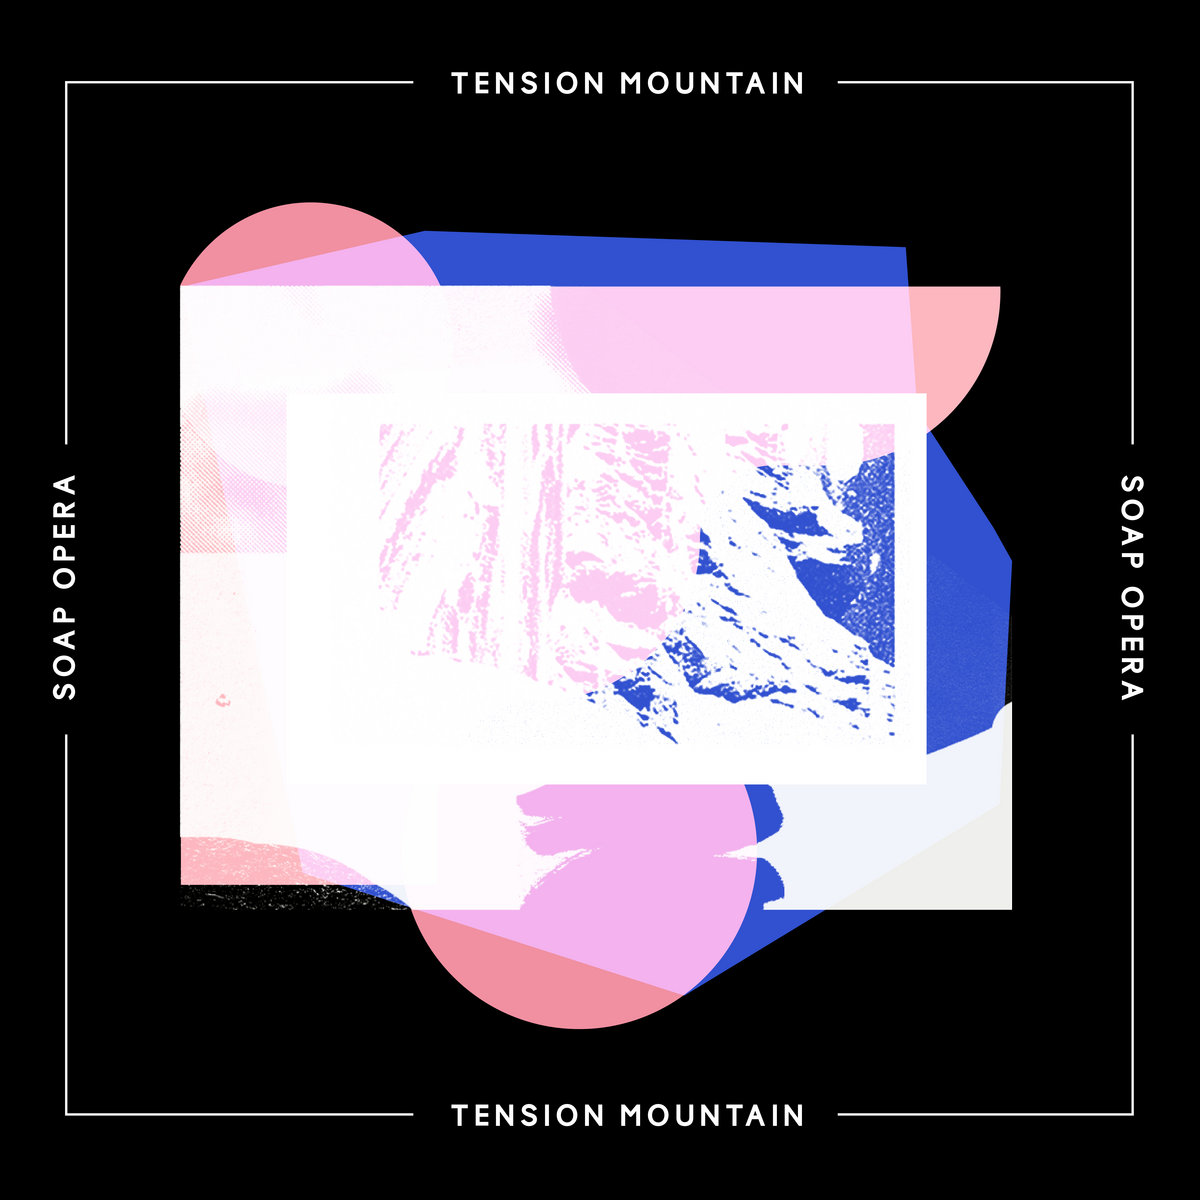 Tension Mountain by Soap Opera